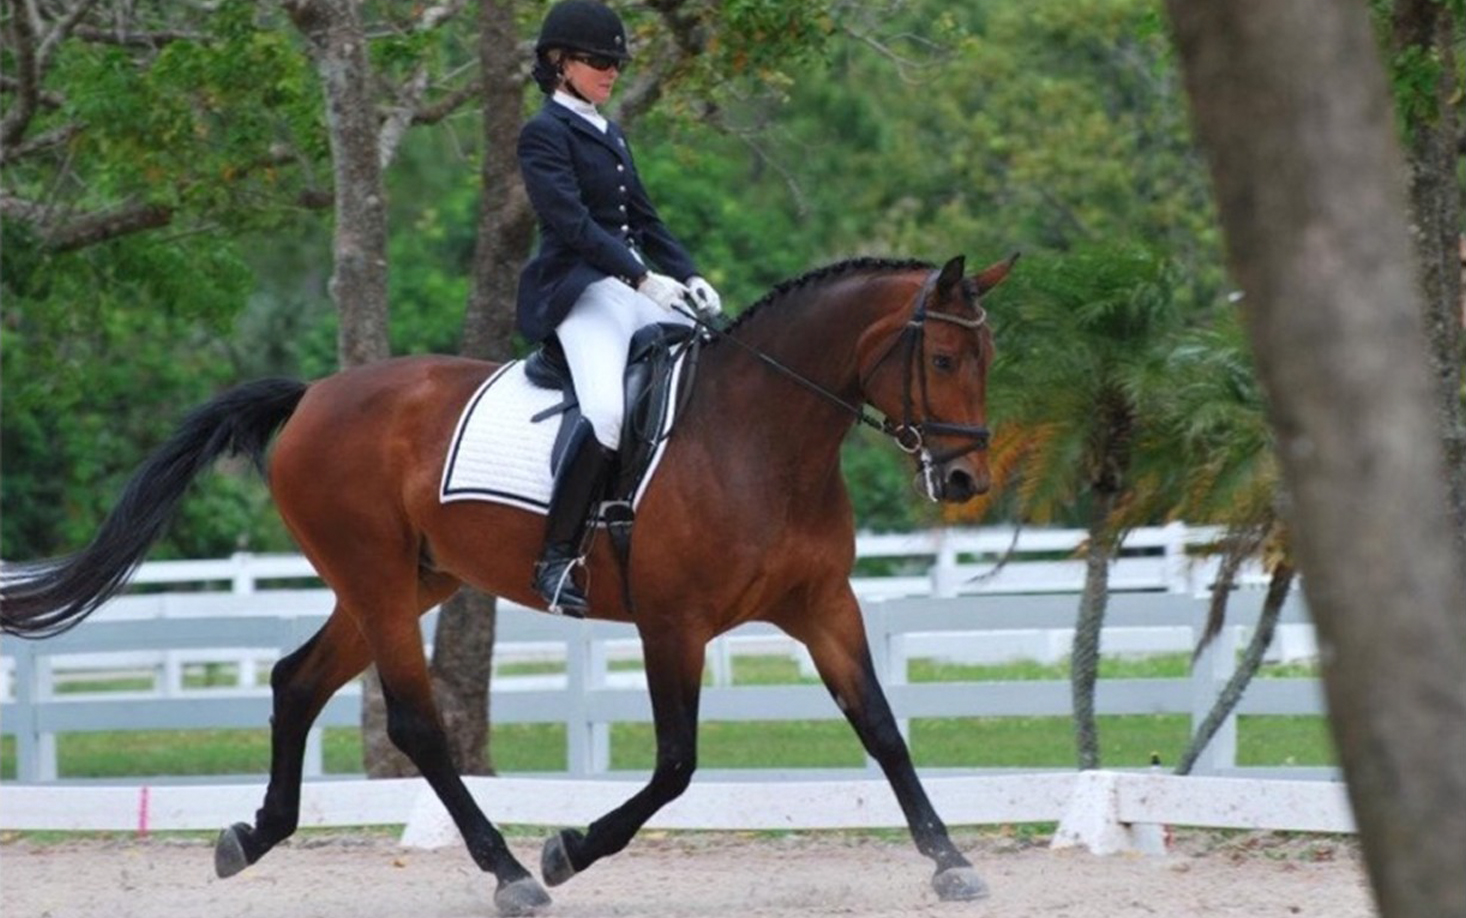 EllieScofield_Dressage_slide